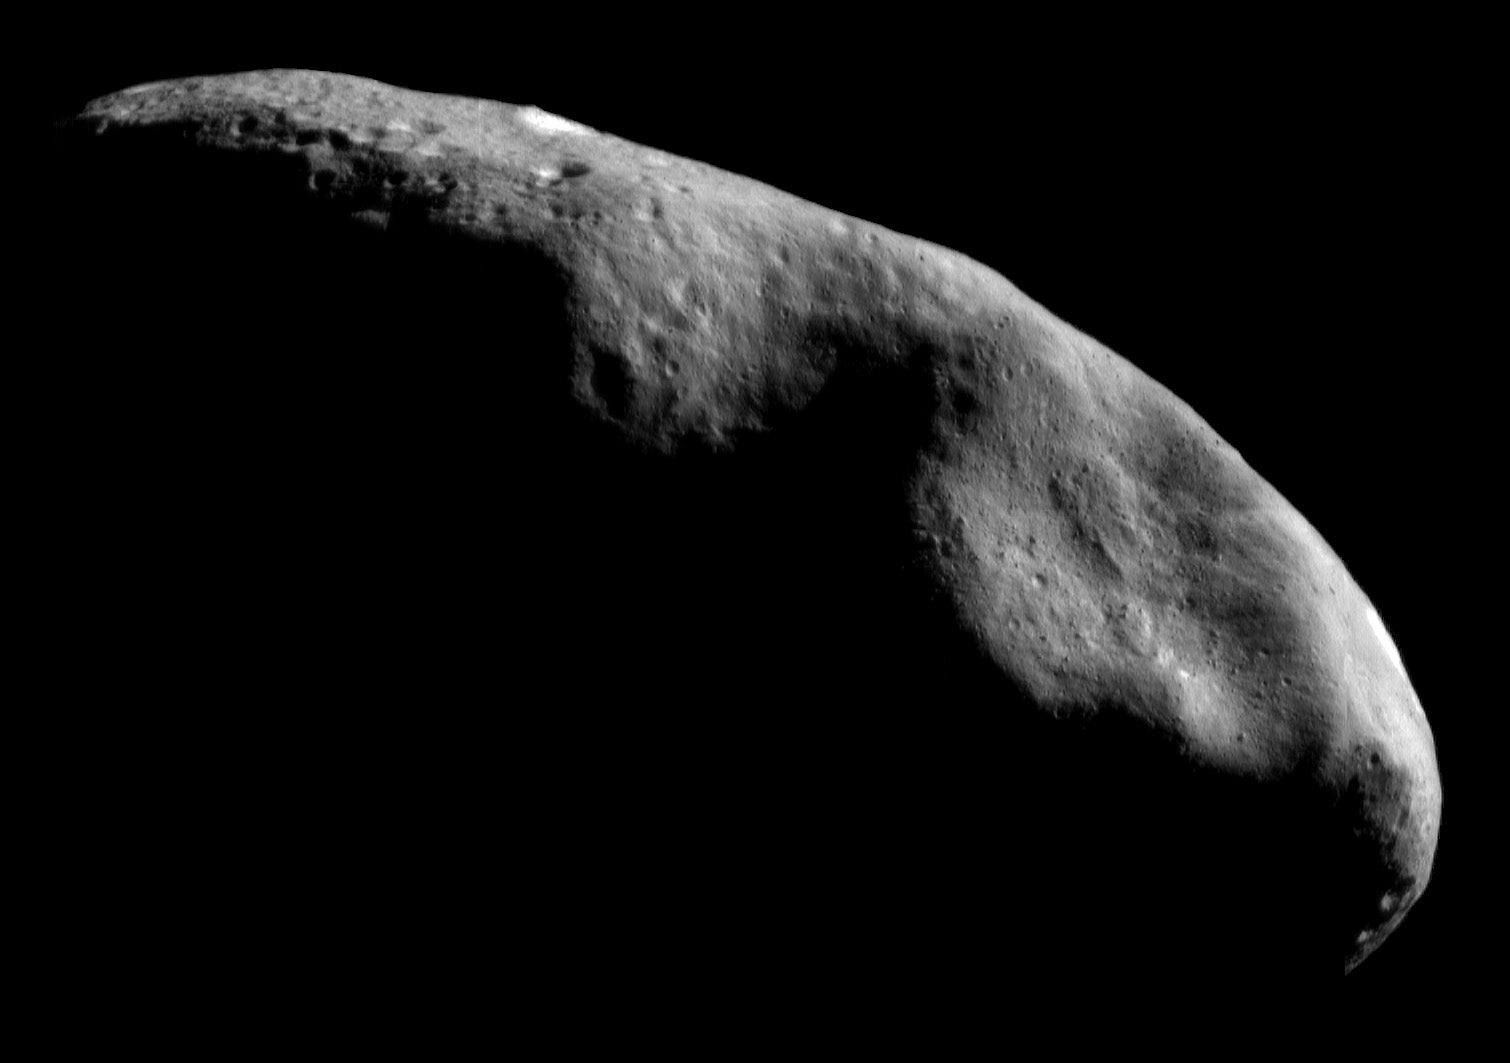 Asteroid Named After Thomas Pynchon